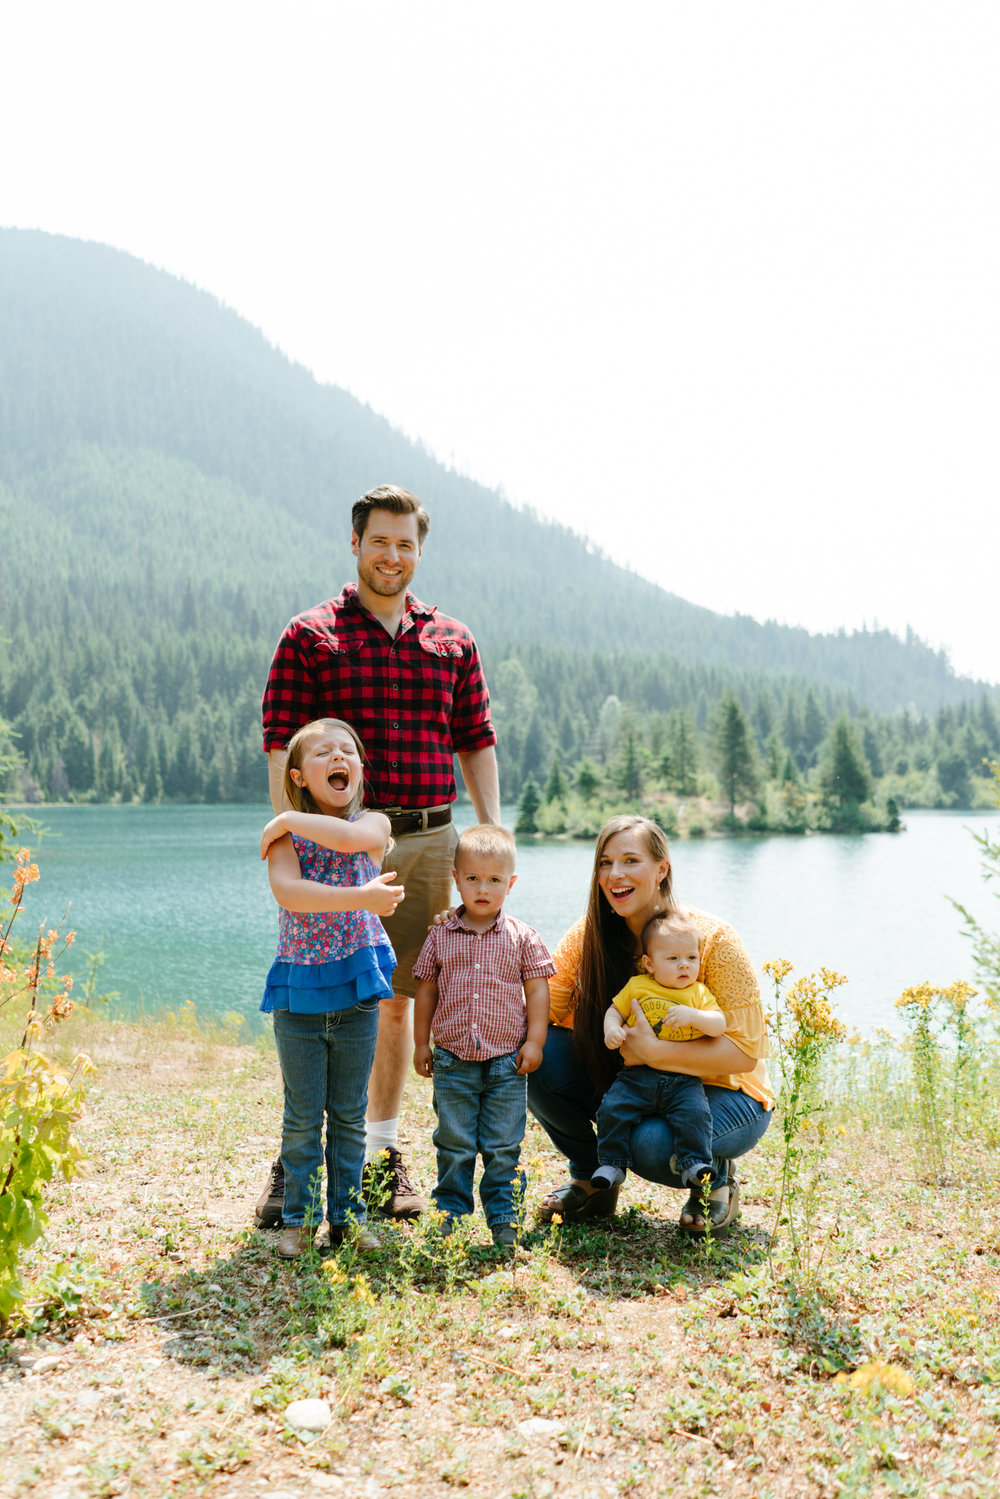 Family Photography at Gold Creek Pond on Snoqualmie Pass, Washington